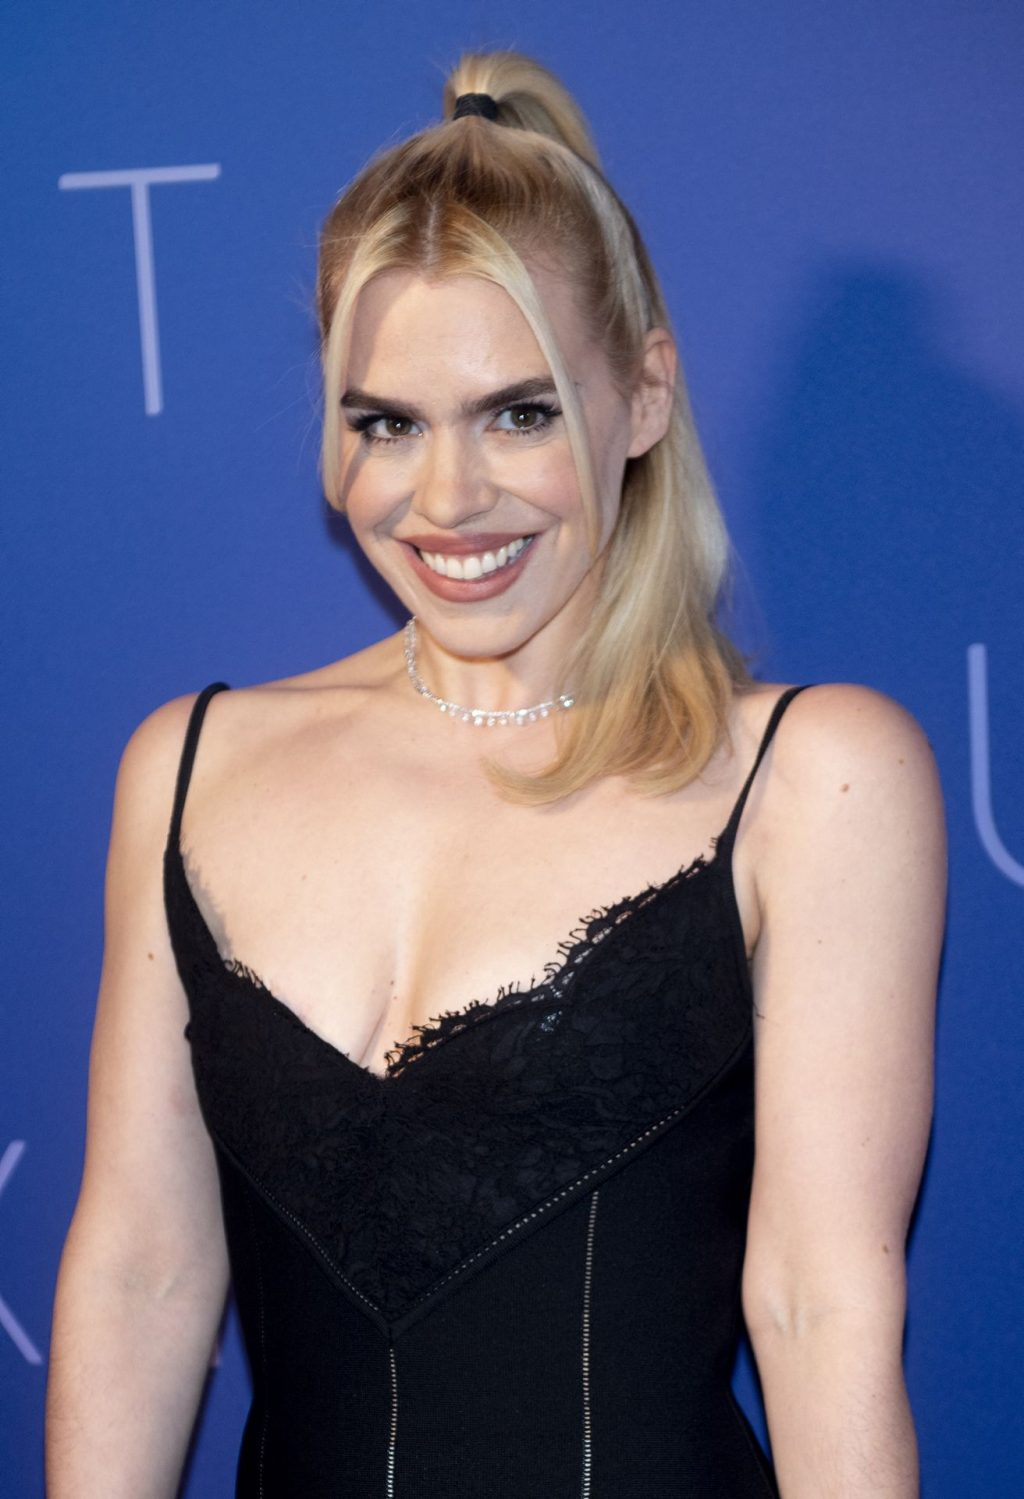 Billie Piper Sexy The Fappening Blog 63 1024x1499 - Billie Piper Smiles at the Sky Up Next Event (67 Photos)